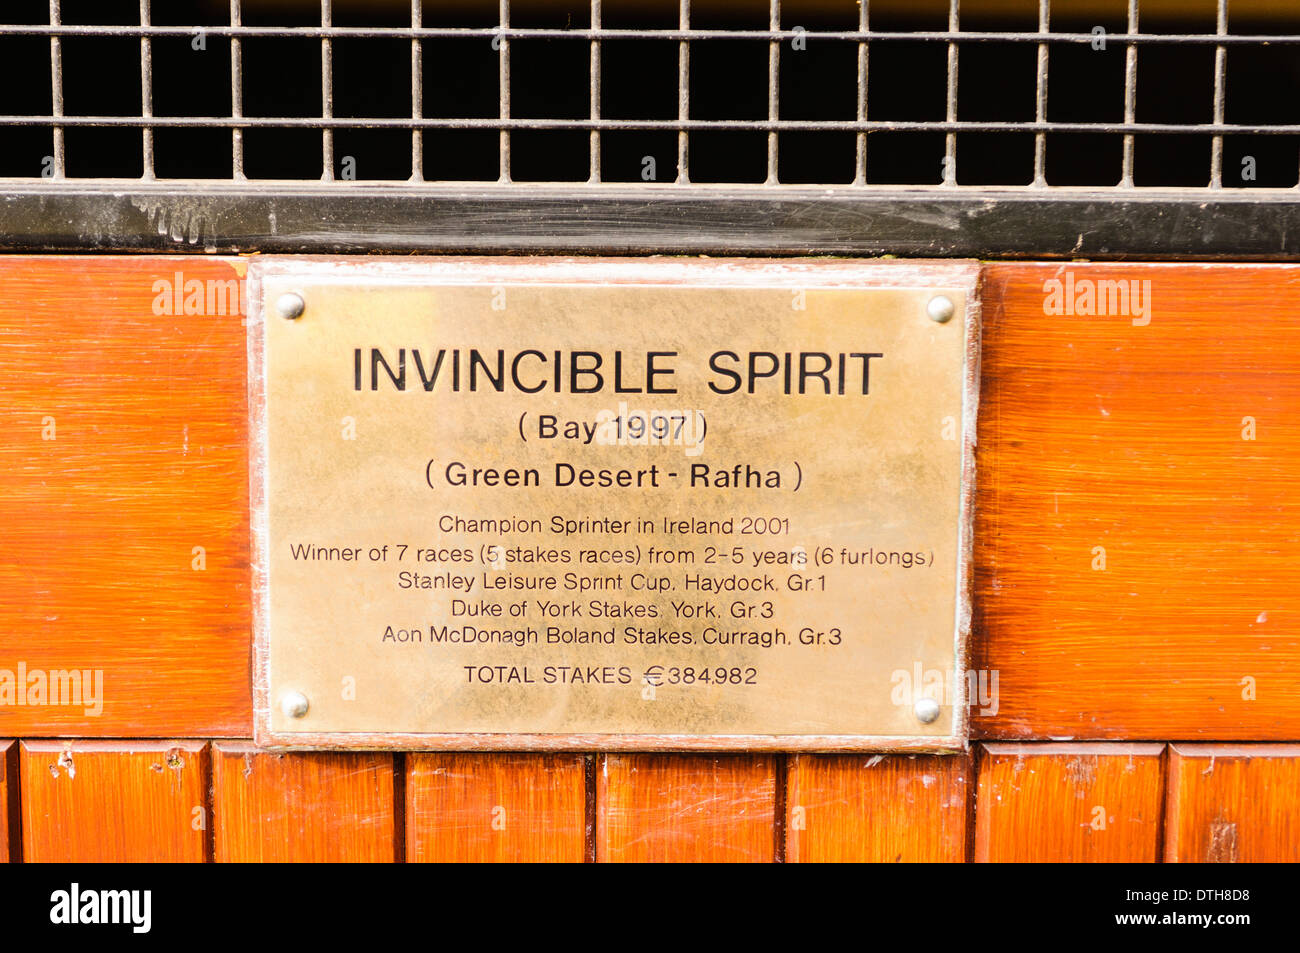 Nameplate for Invincible Spirit stud horse at the Irish National Stud. - Stock Image